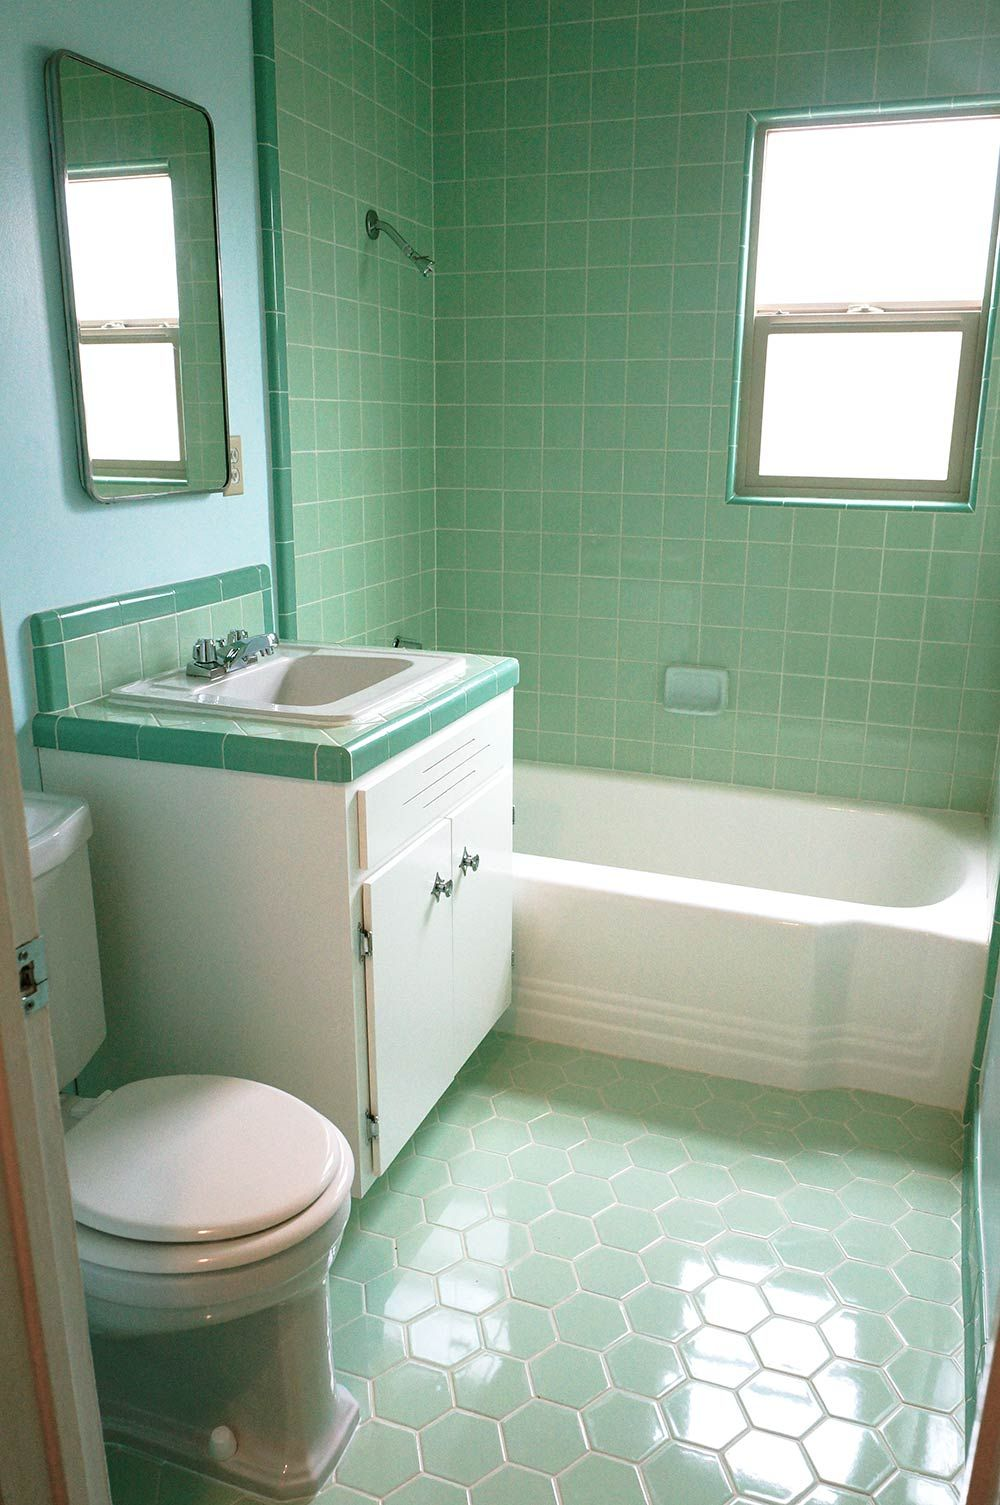 old bathroom tiles for sale the color green in kitchen and bathroom sinks tubs and 23884